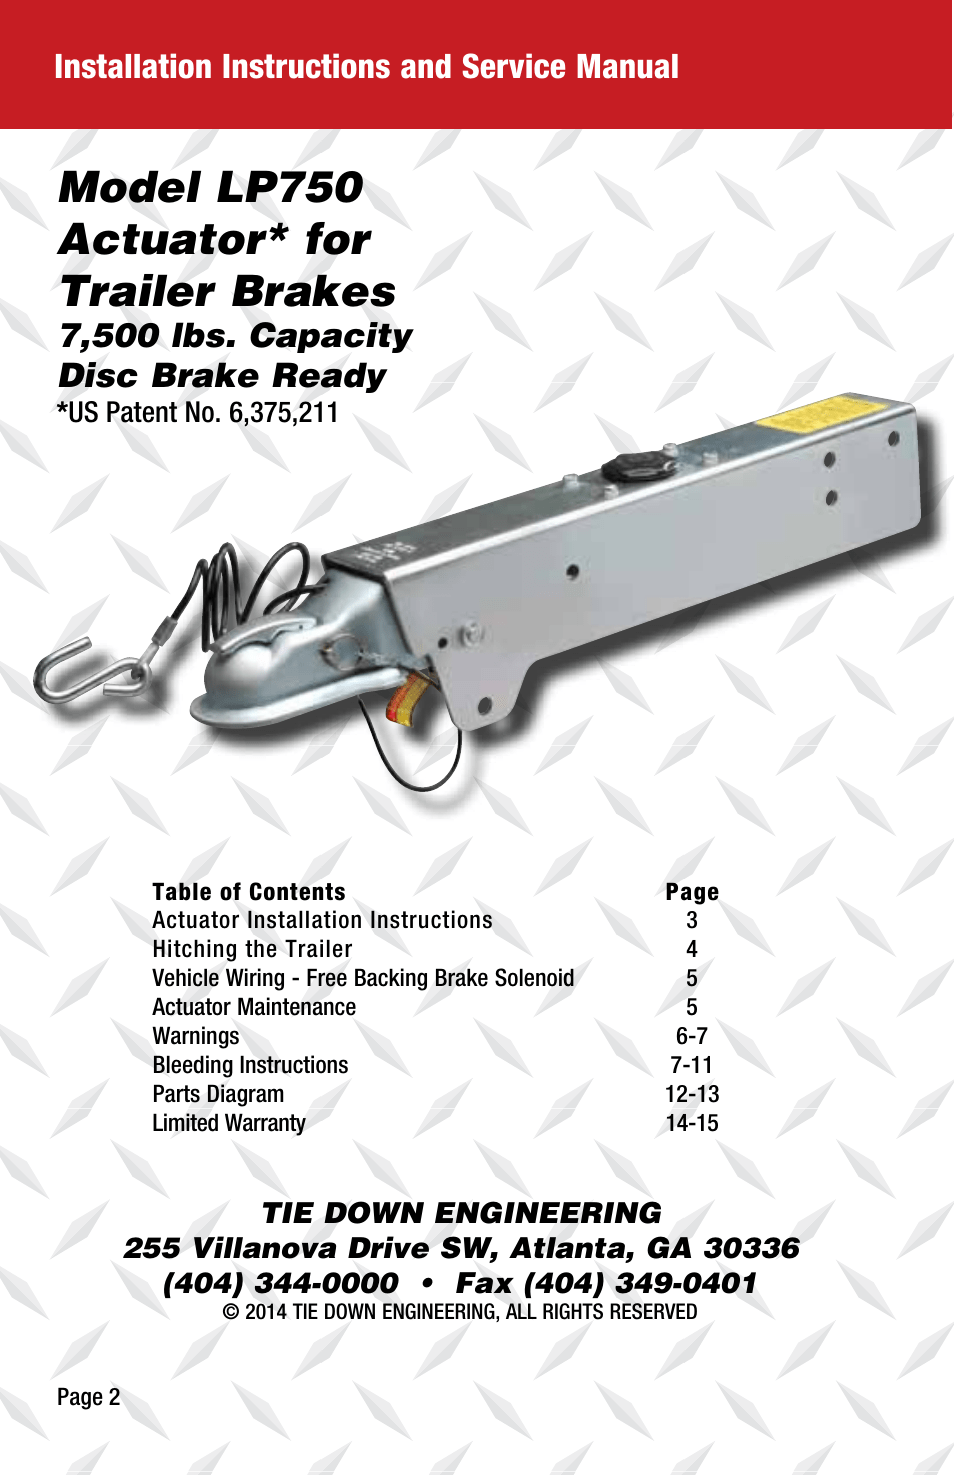 hight resolution of model lp750 actuator for trailer brakes installation instructions and service manual 7 500 lbs capacity disc brake ready tie down lp750 user manual